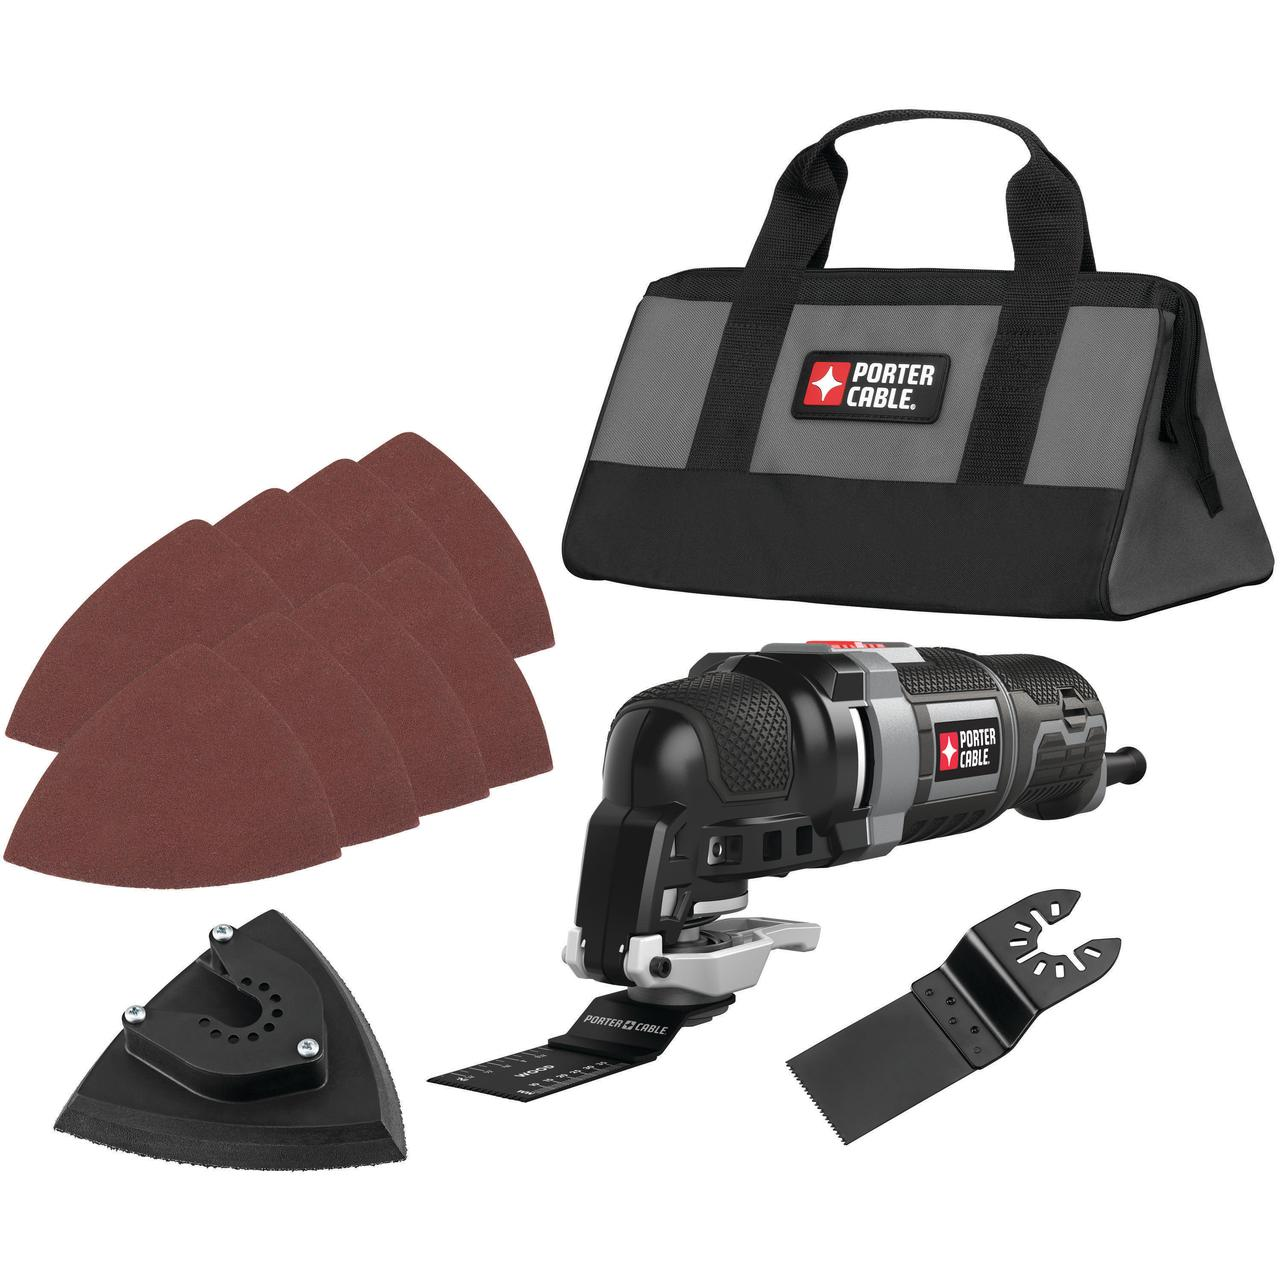 PORTER CABLE PCE606K - 3-Amp 11-Piece Oscillating Multi Tool Kit